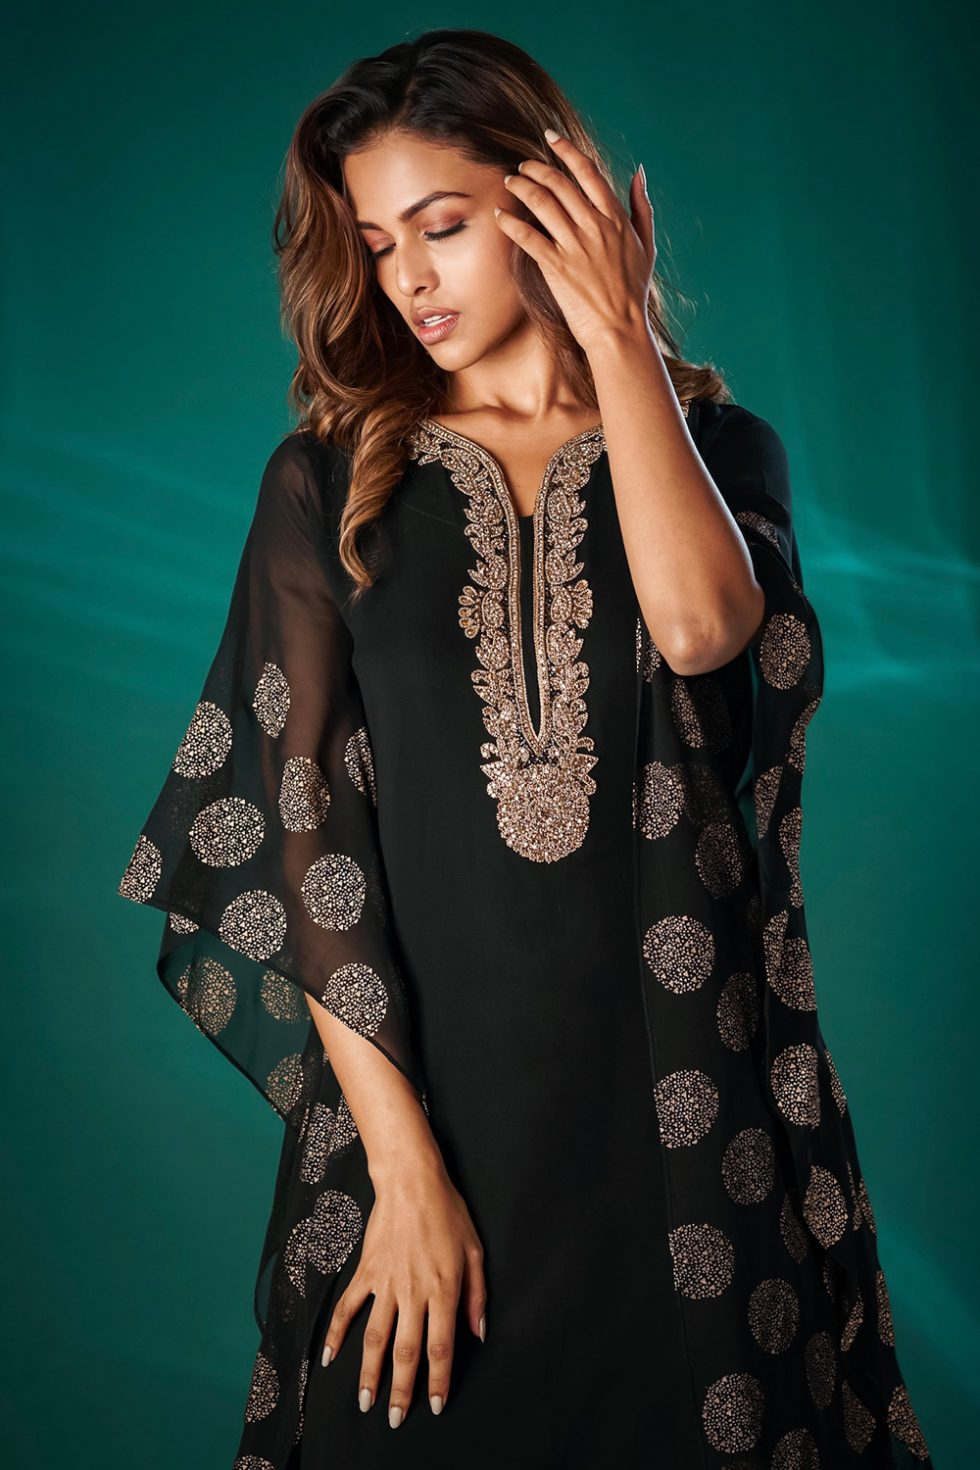 Raven black printed kurti with a handkerchief style hem and embroidered neckline.